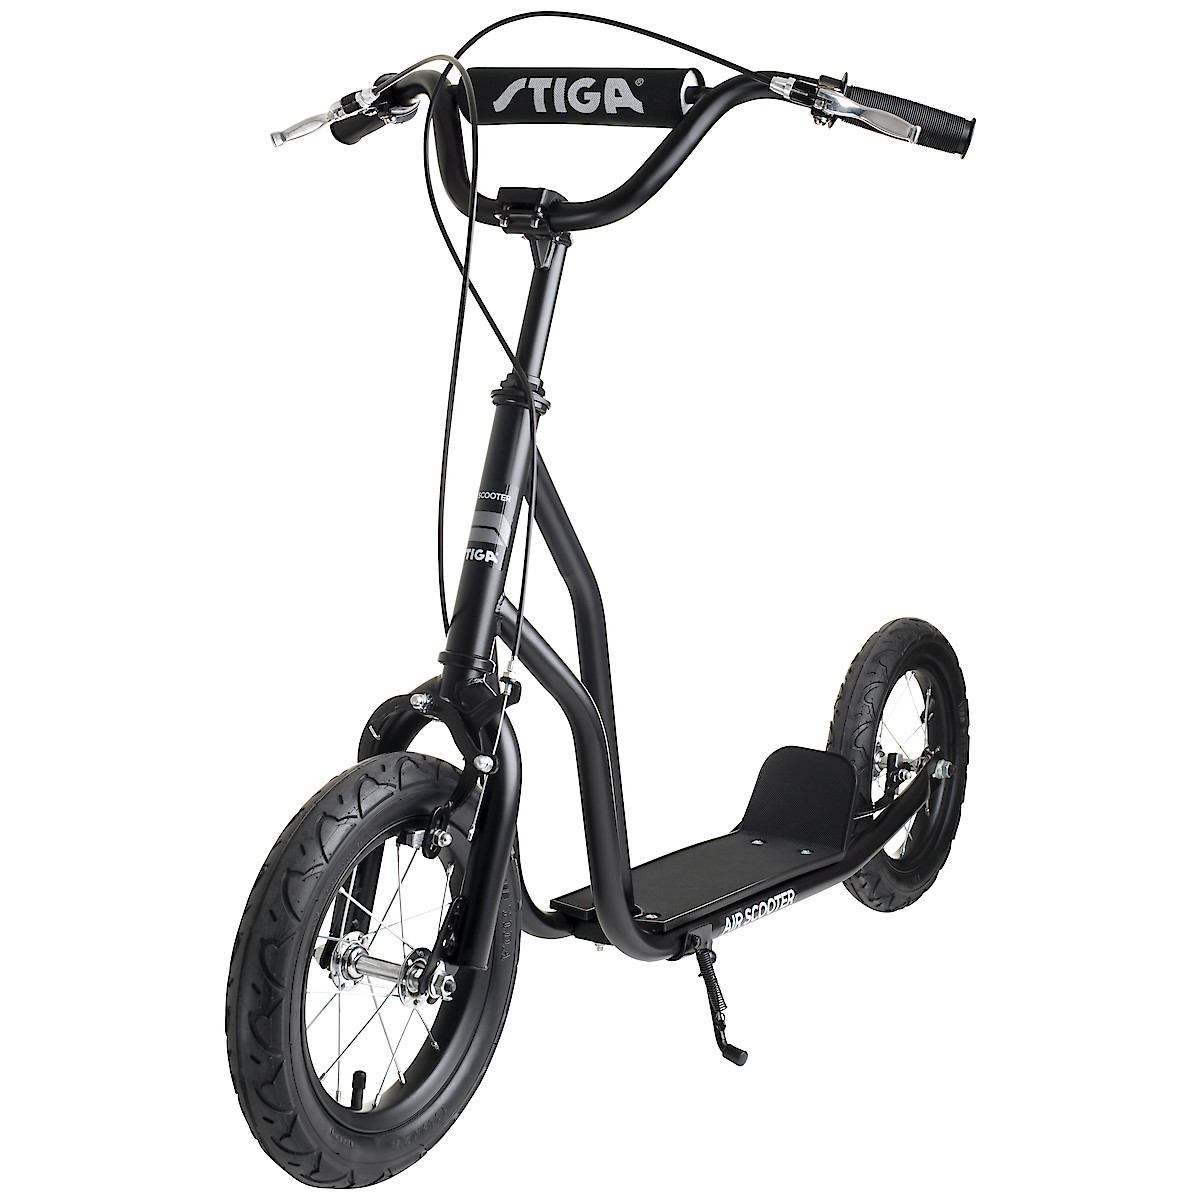 Sparkcykel Stiga Air Scooter